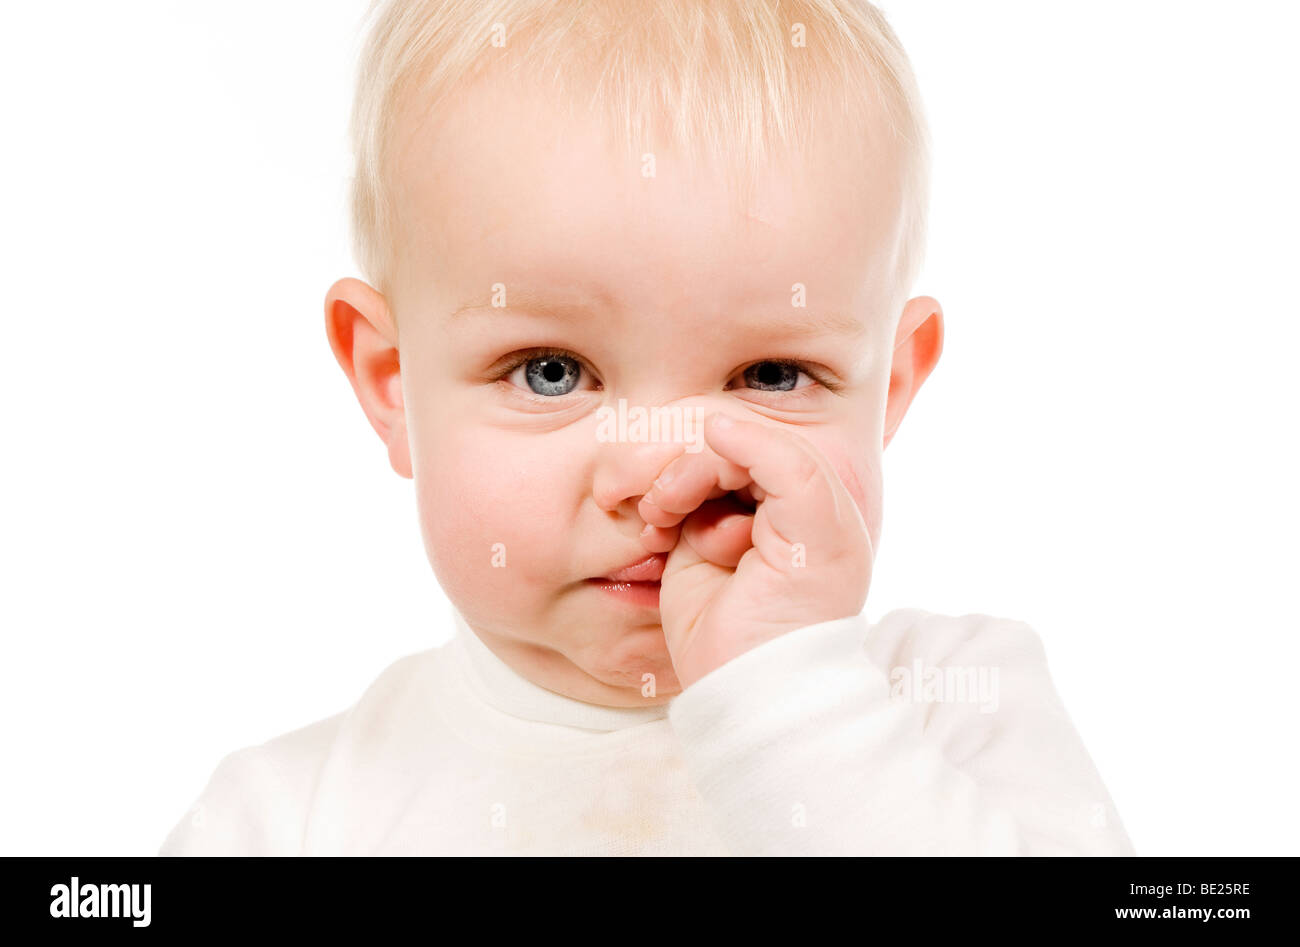 Boy with runny nose - Stock Image